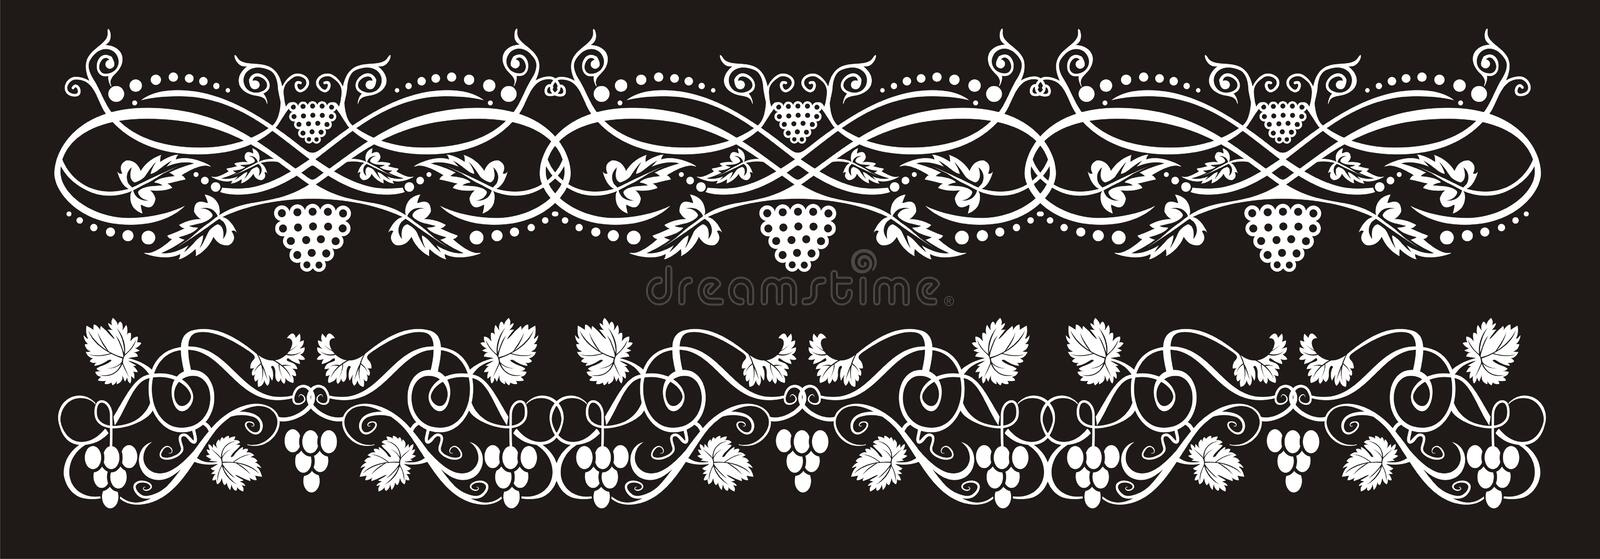 Wine banners royalty free illustration